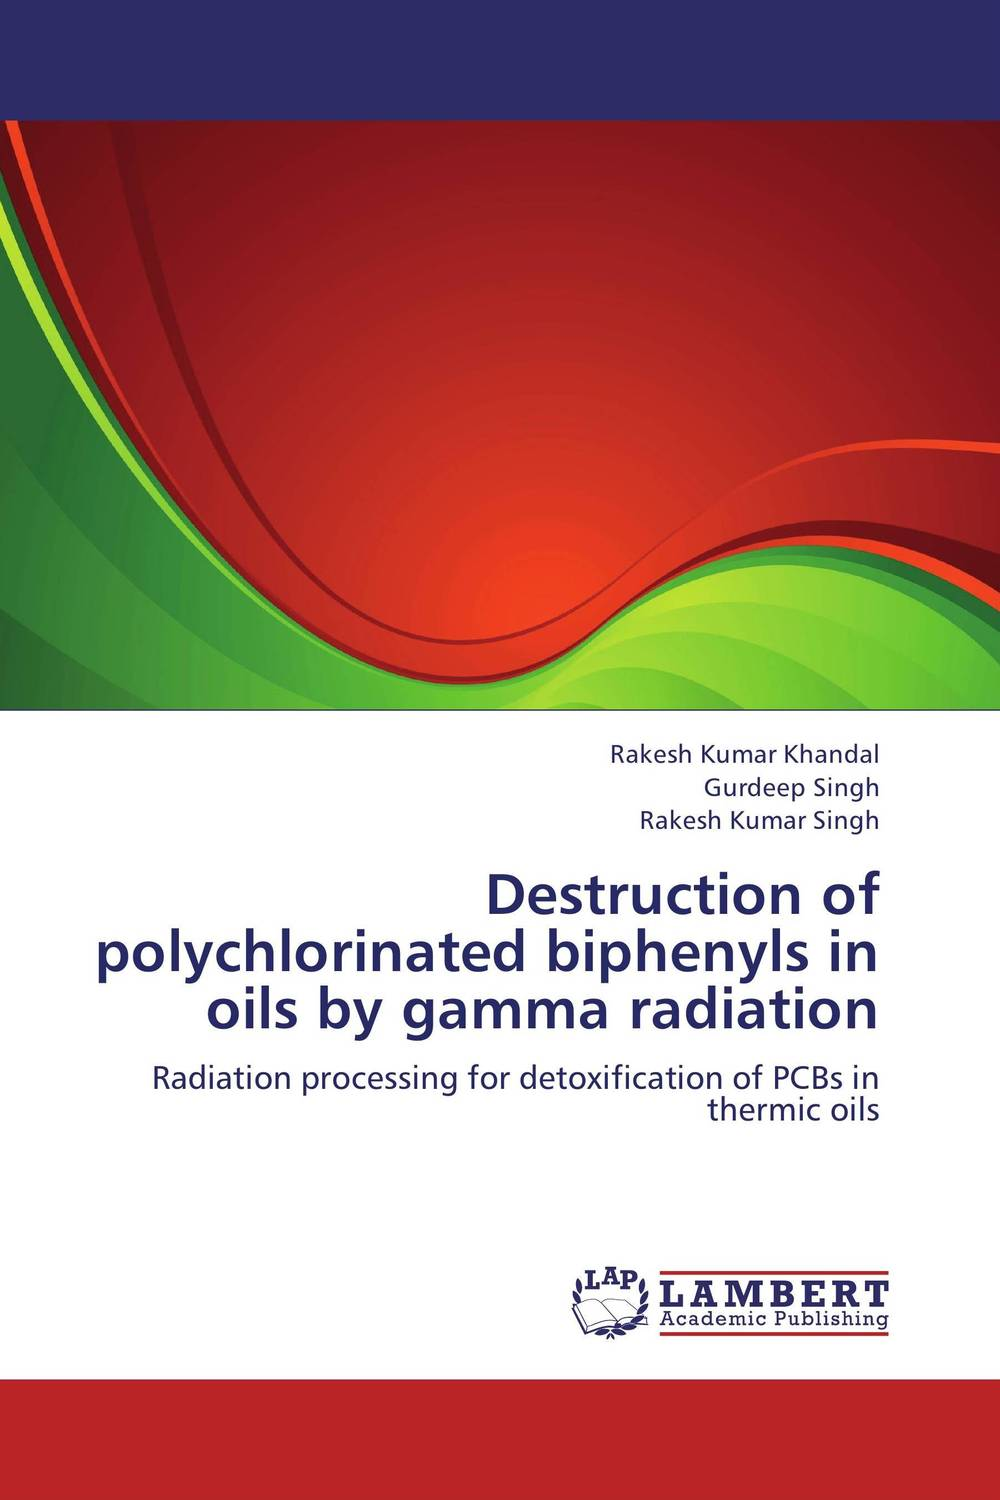 Destruction of polychlorinated biphenyls in oils by gamma radiation the destruction of tilted arc – documents